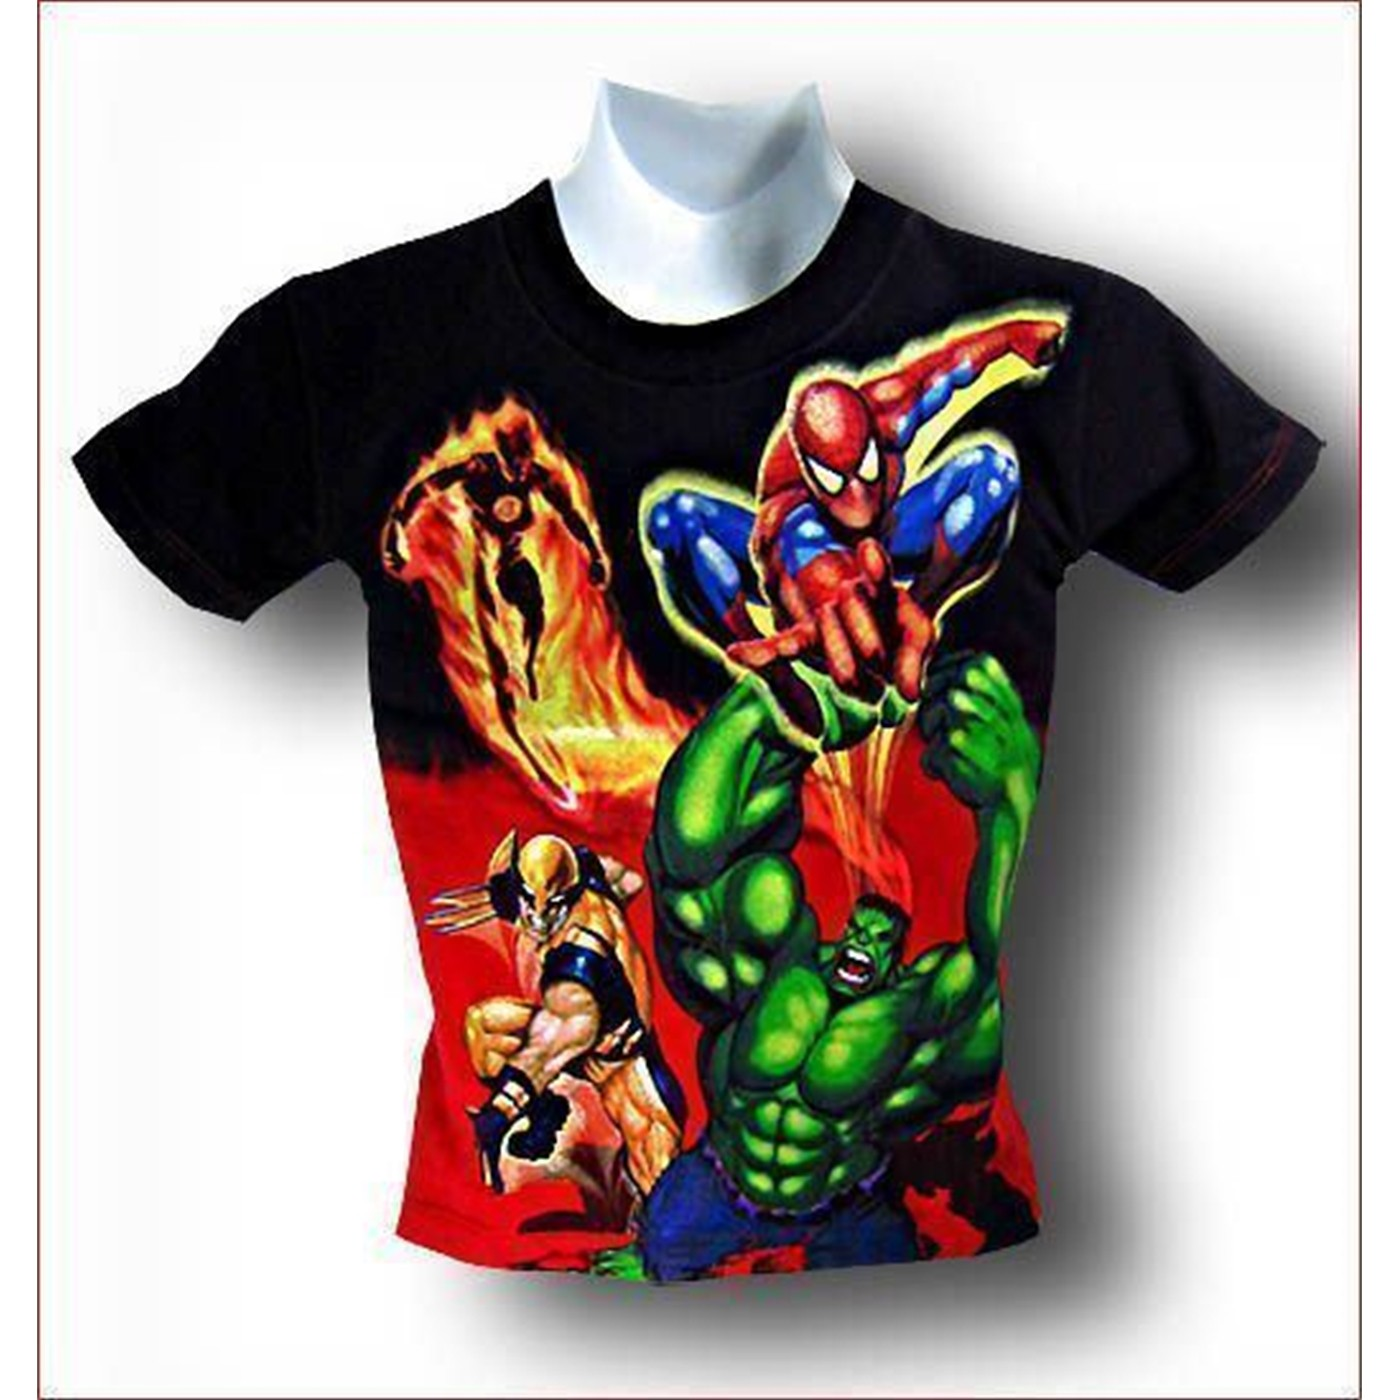 Spiderman Hulk Juvenile Marvel Blast T-Shirt